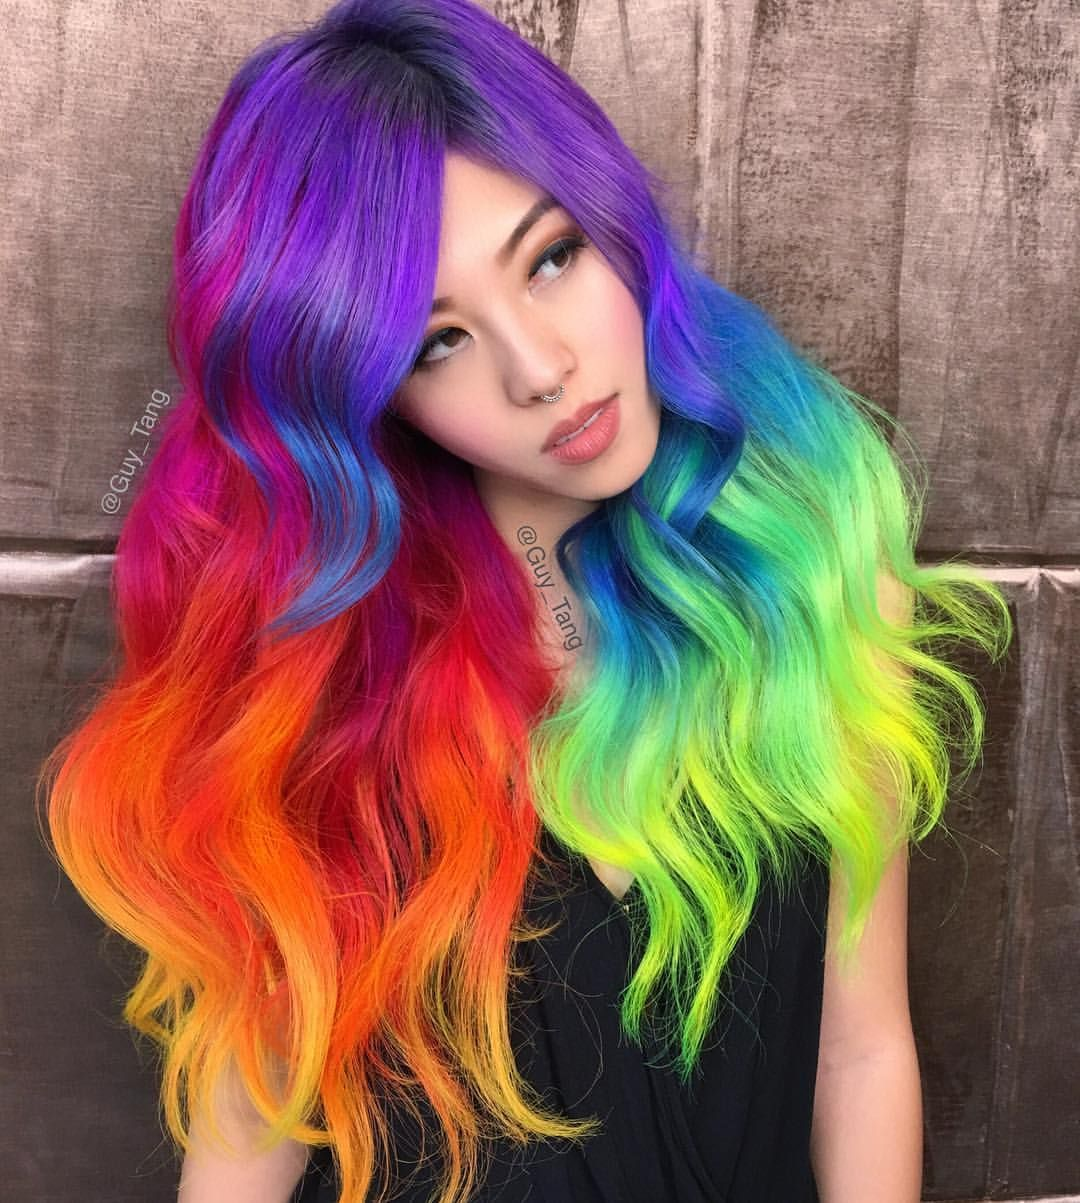 Guy Tang On Instagram Coachella Ready Neon Rainbow